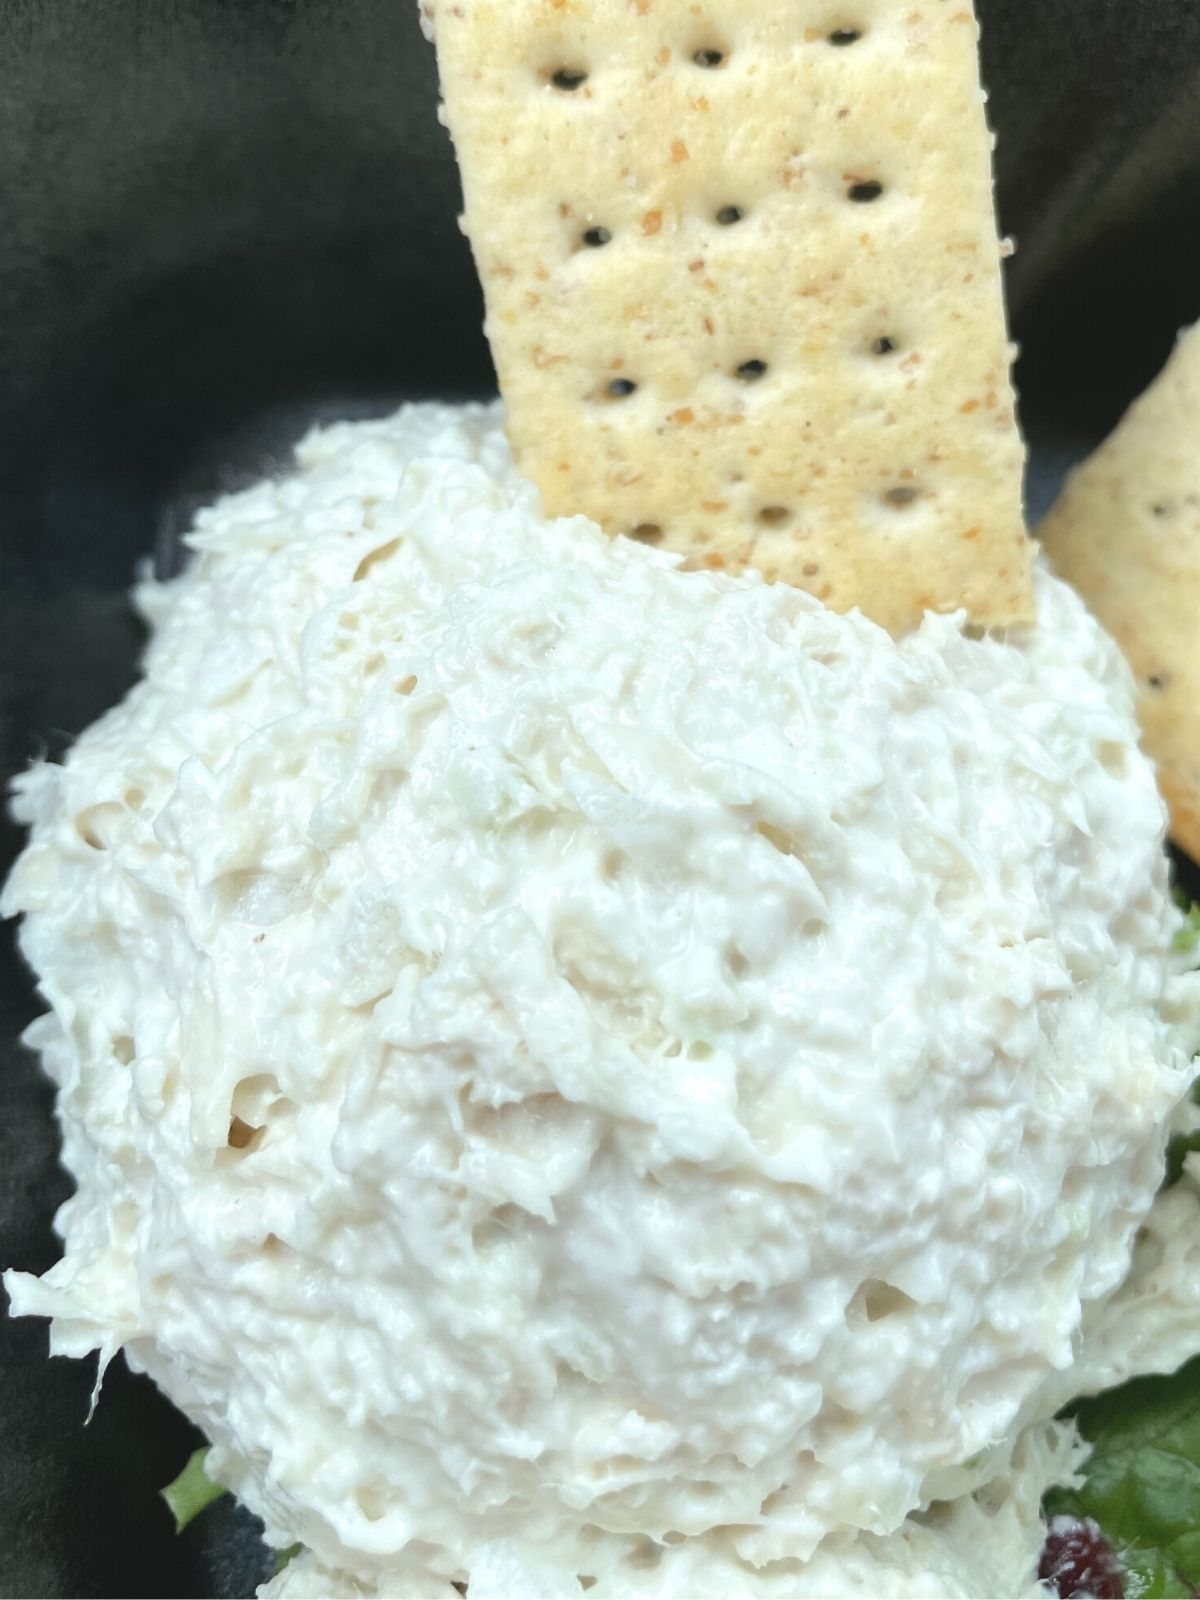 A scoop of Dixie Chick chicken salad chick flavor chicken salad with a whole wheat cracker stuck in it.